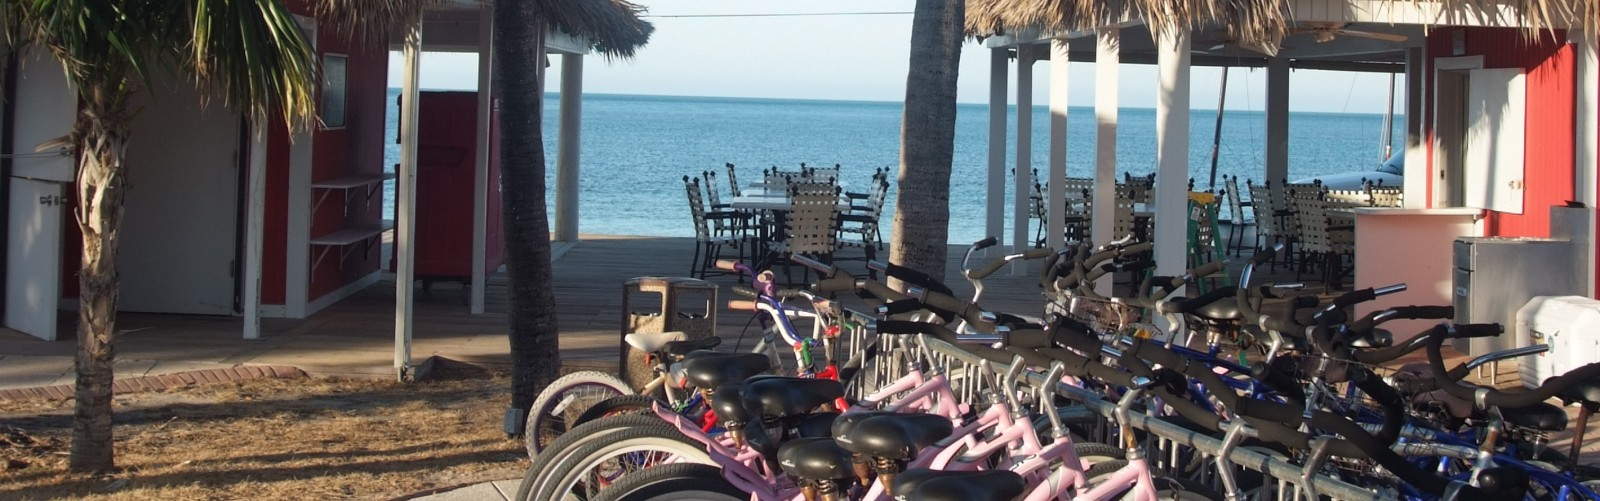 Bahamas Bike Tours